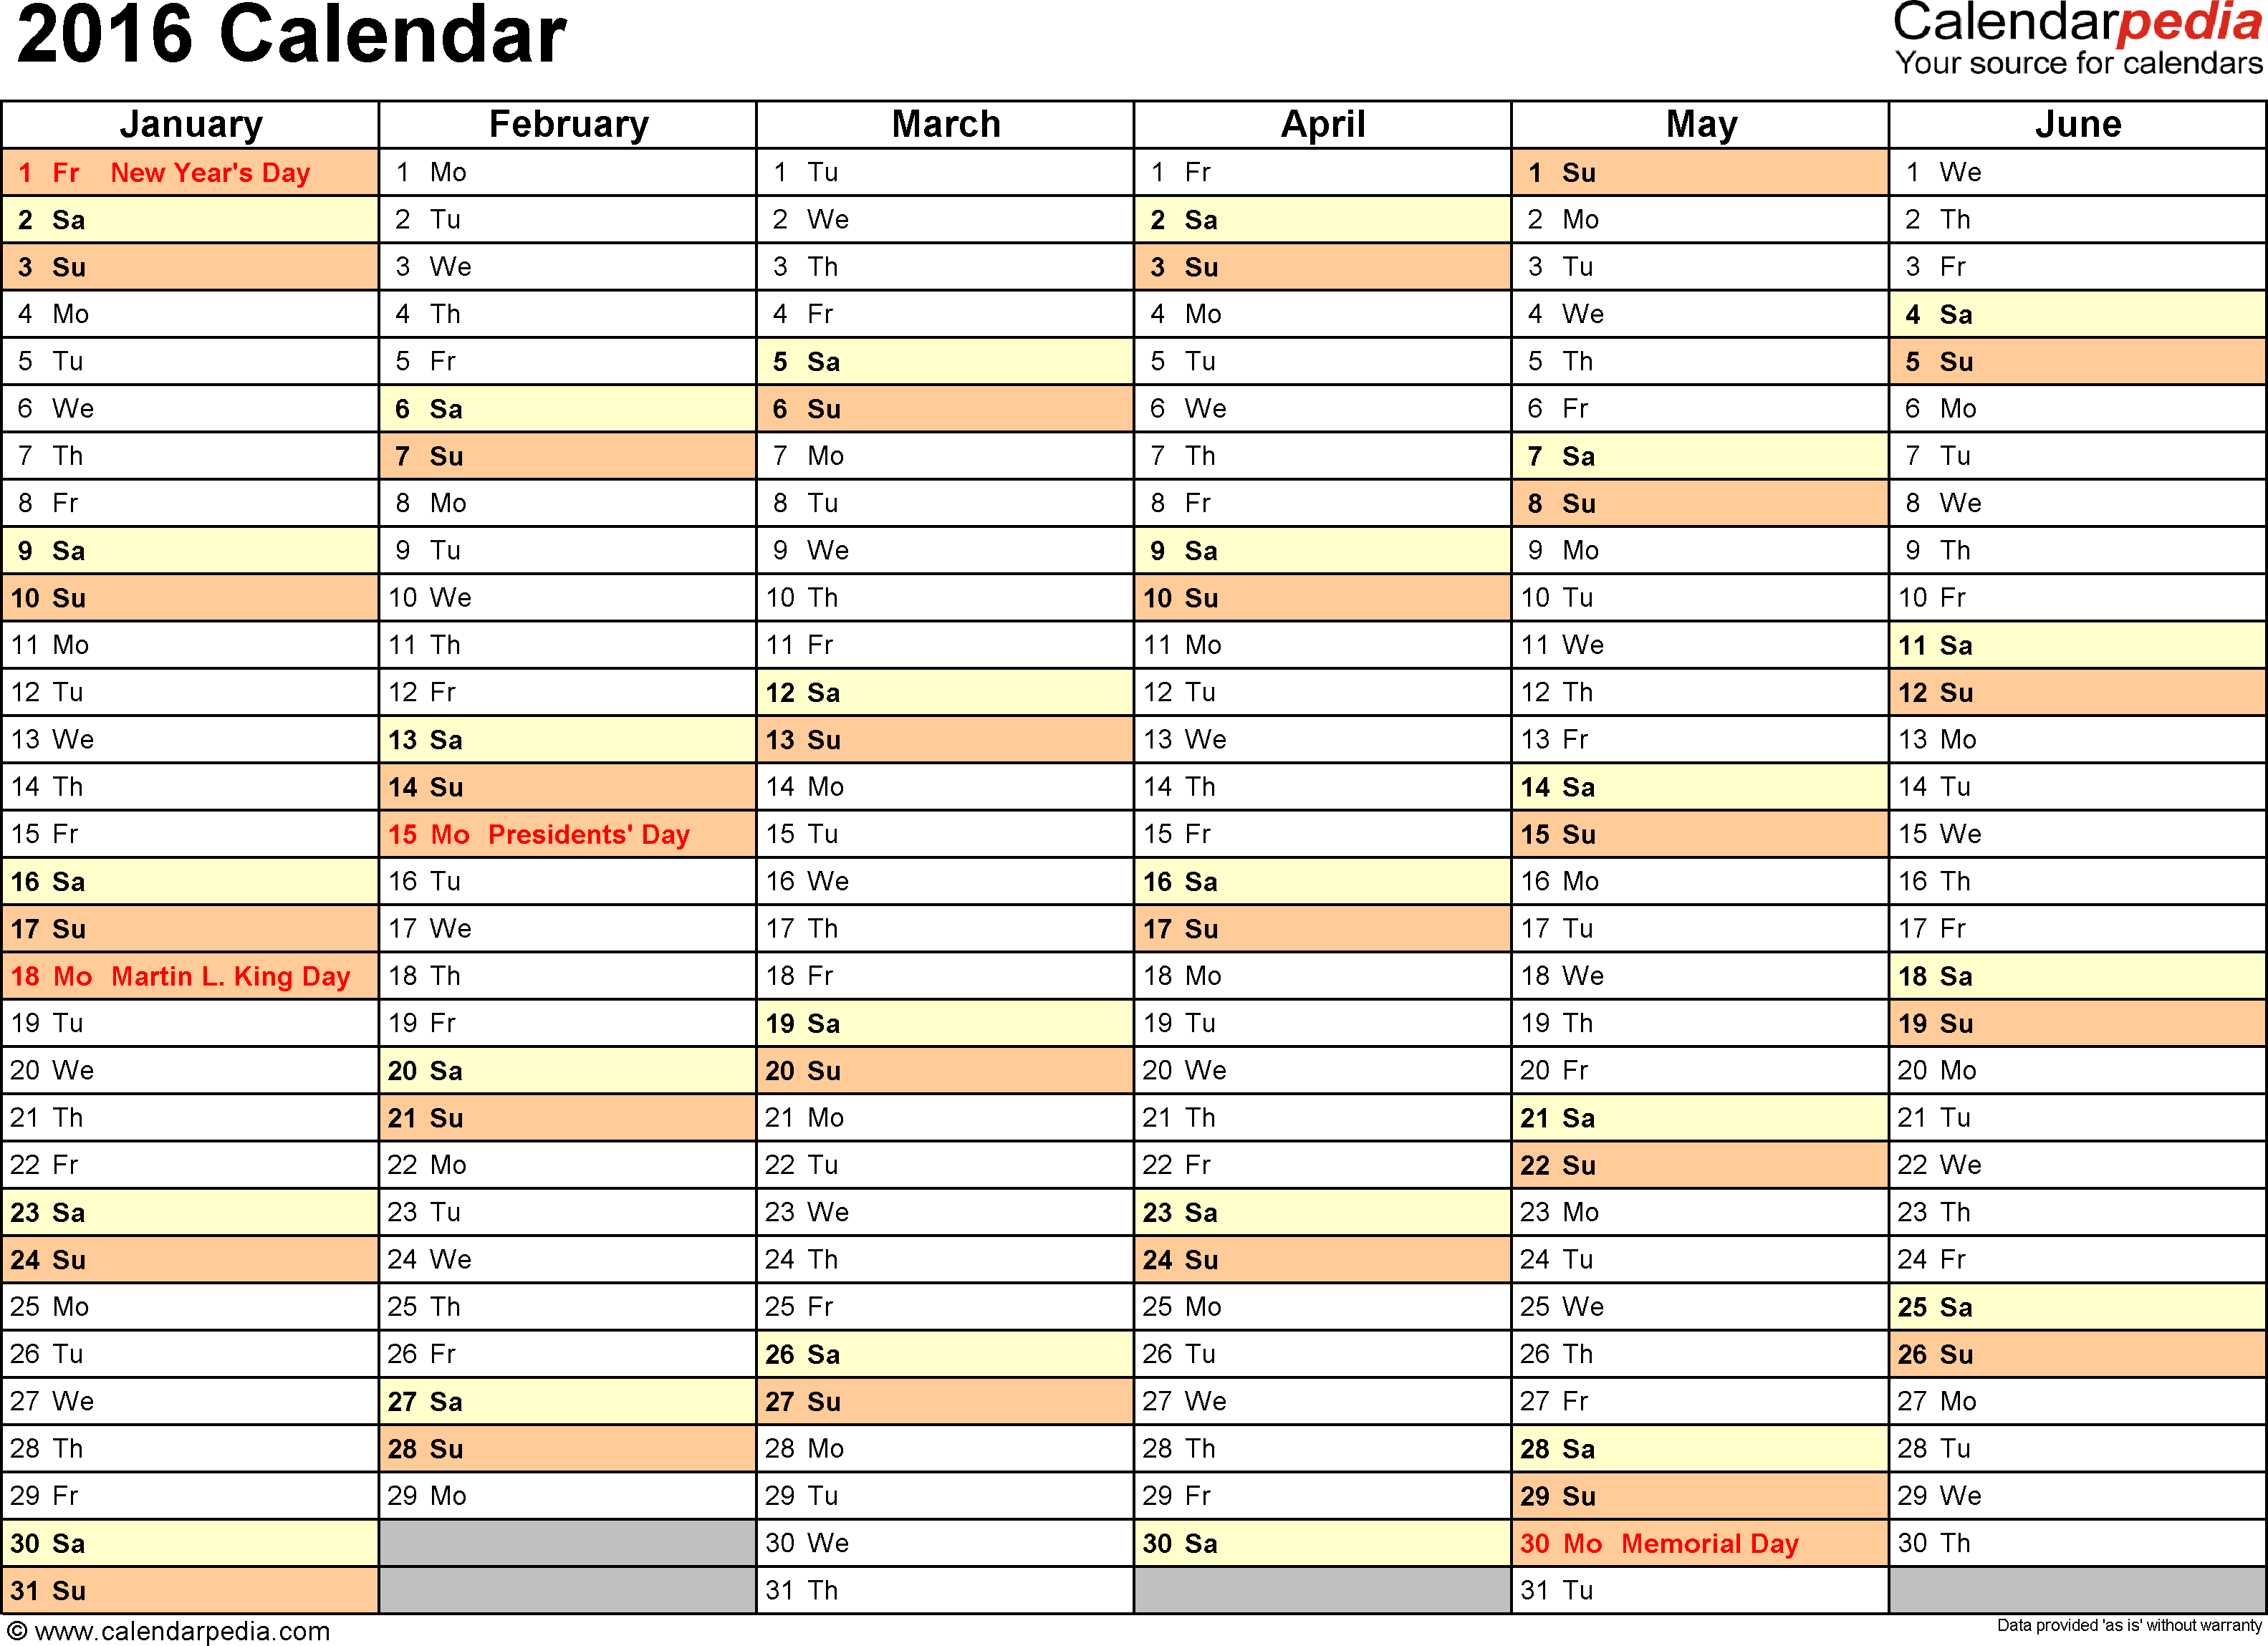 Ediblewildsus  Sweet  Calendar  Download  Free Printable Excel Templates Xls With Excellent Template   Calendar For Excel Months Horizontally  Pages Landscape Orientation With Beautiful Oracle Excel Also Excel Formula Isna In Addition Excel Construction Estimate Template And How To Do Percentage Increase In Excel As Well As Implied Volatility Excel Additionally Pyramid Excel Towels From Calendarpediacom With Ediblewildsus  Excellent  Calendar  Download  Free Printable Excel Templates Xls With Beautiful Template   Calendar For Excel Months Horizontally  Pages Landscape Orientation And Sweet Oracle Excel Also Excel Formula Isna In Addition Excel Construction Estimate Template From Calendarpediacom